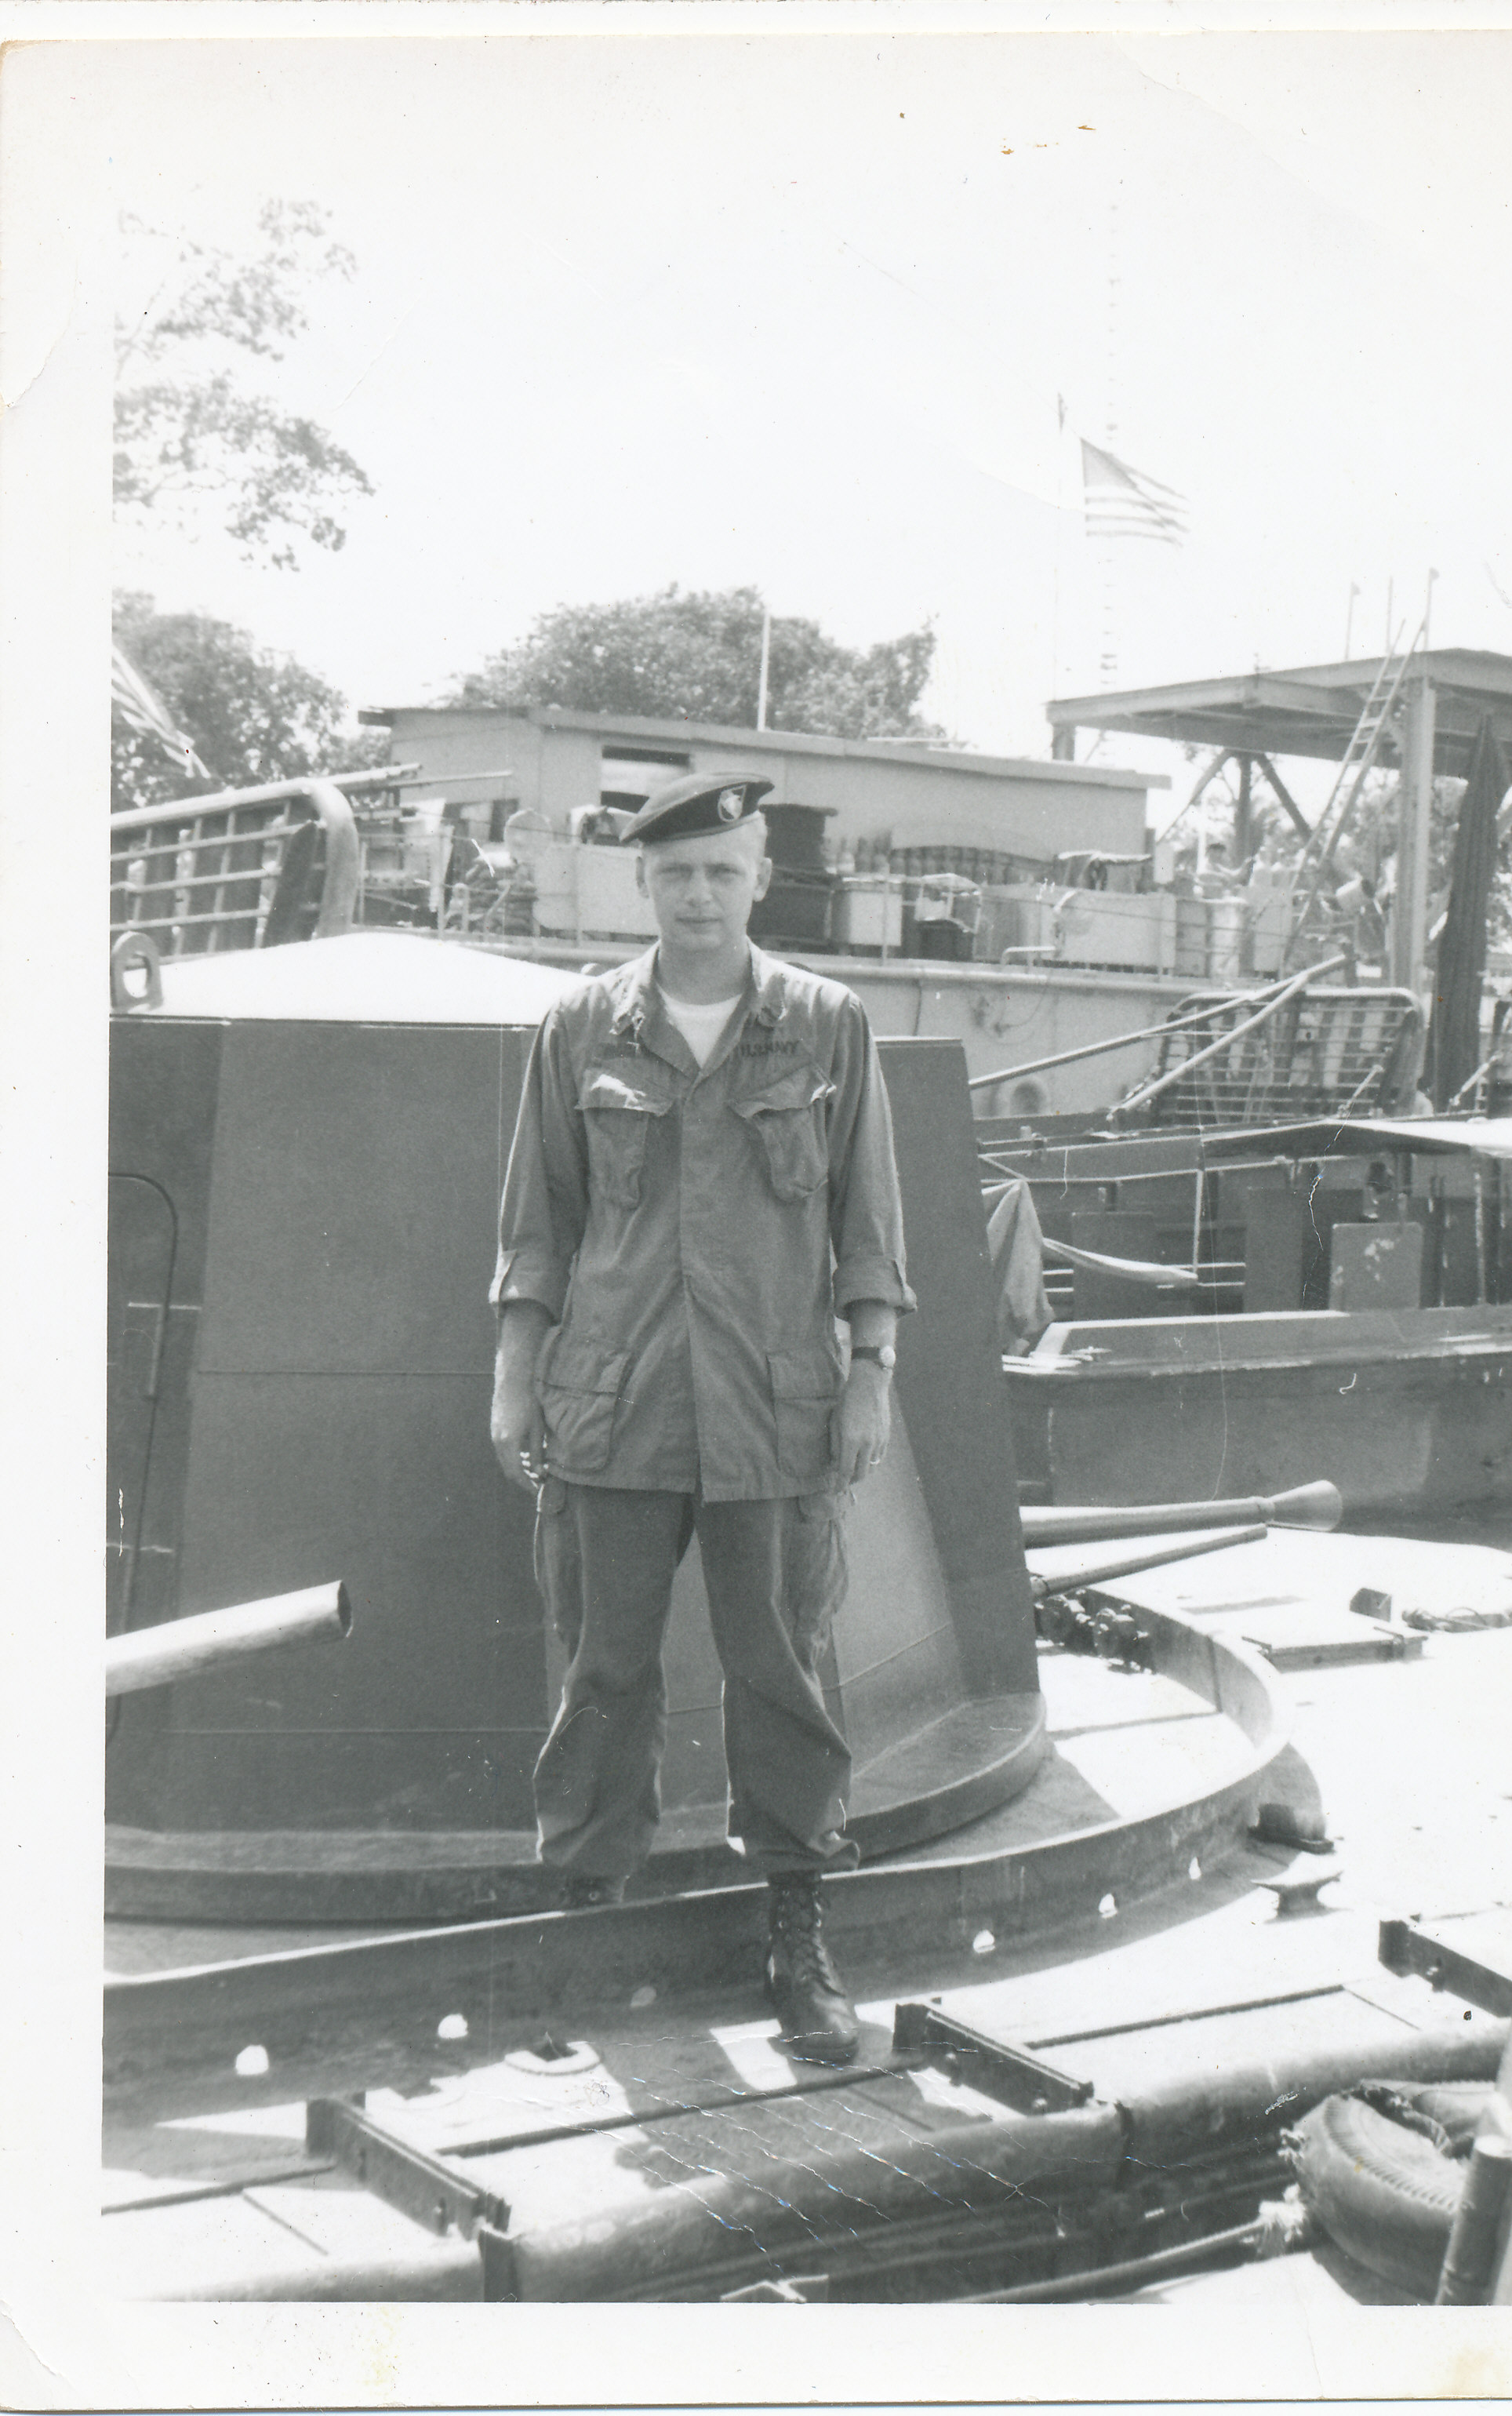 Artie standing on a ship